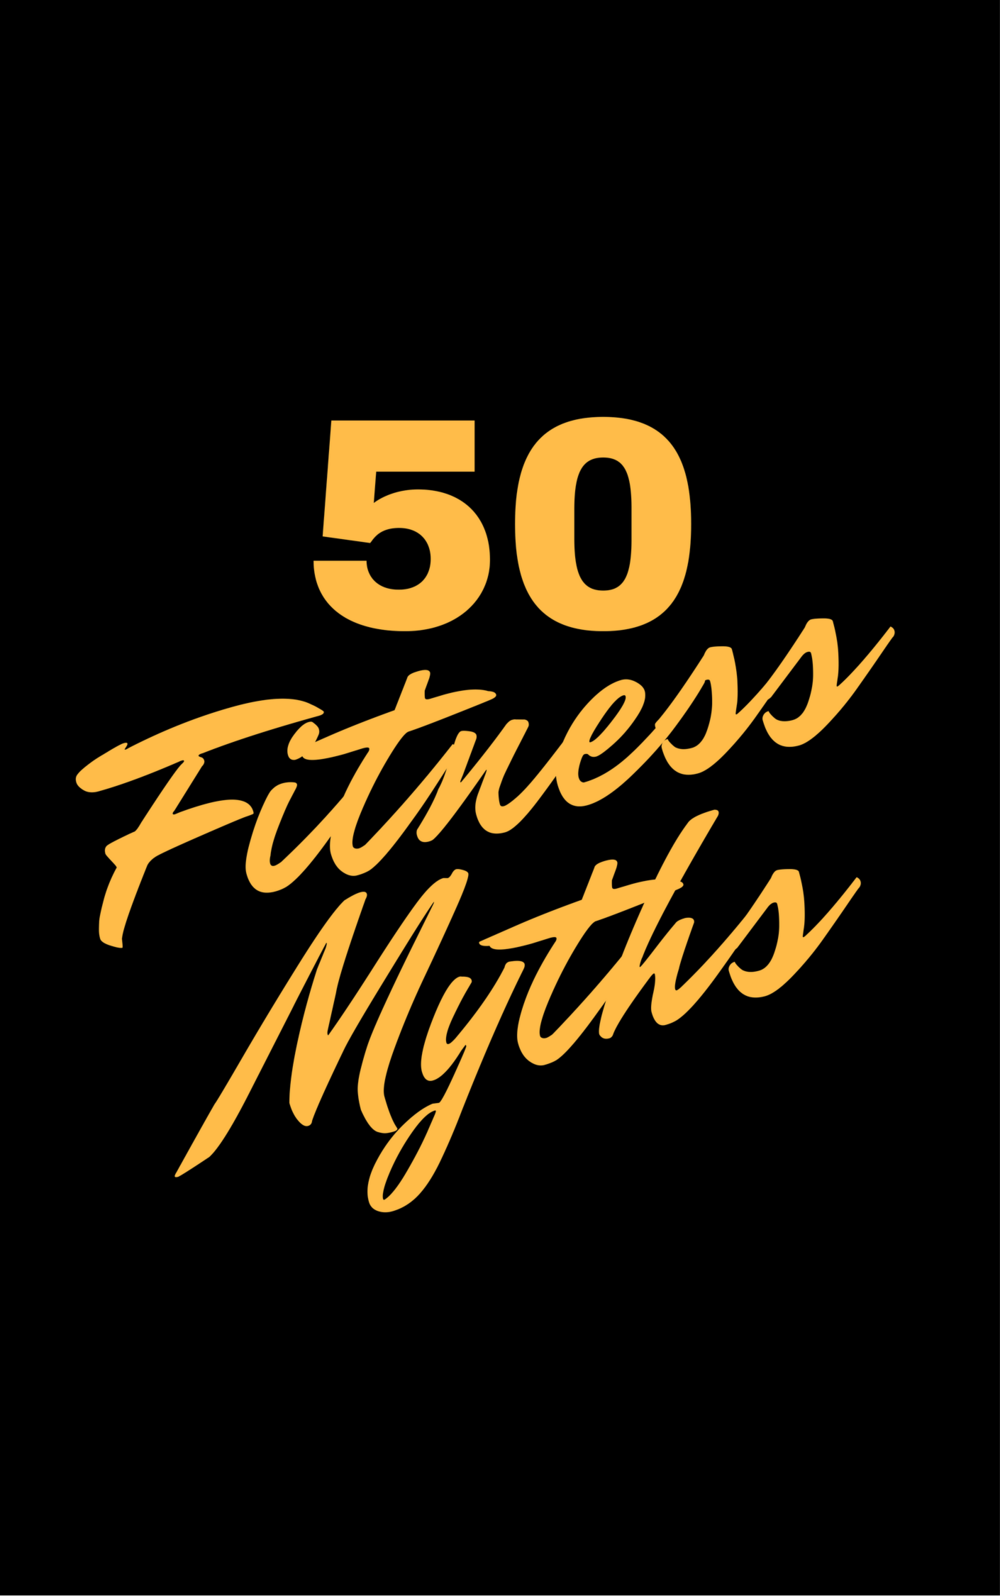 50 fitness myths.png